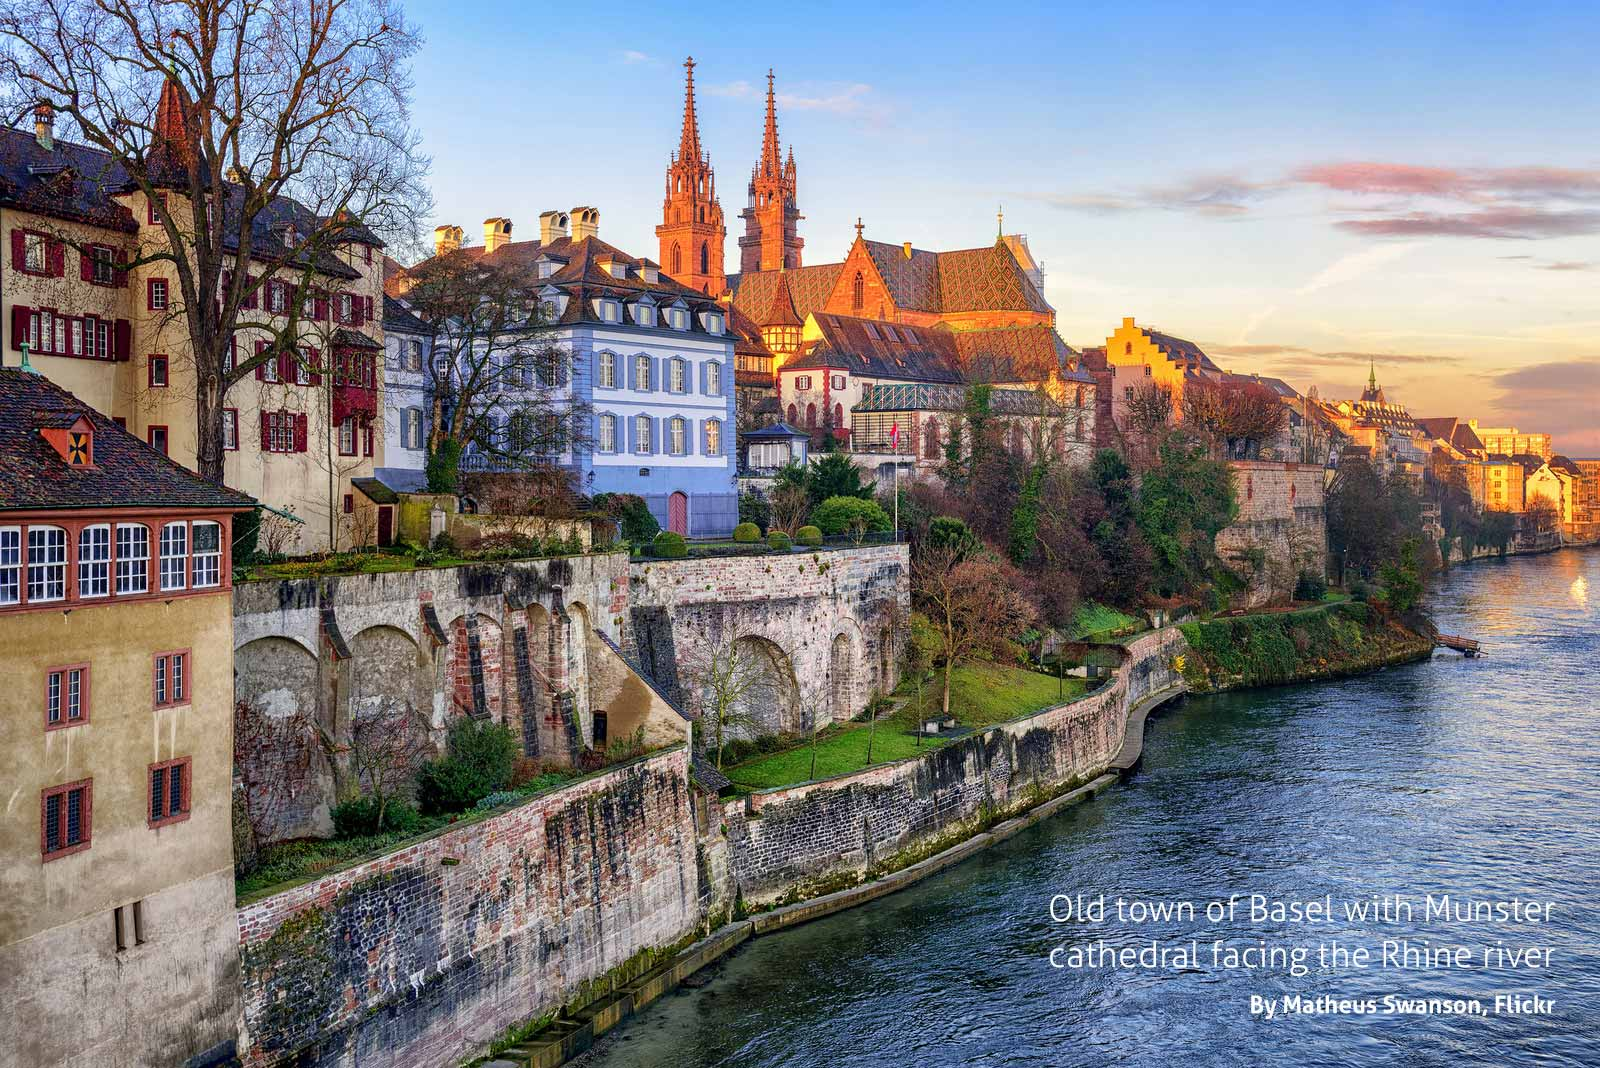 Old town of Basel with Munster cathedral facing the Rhine river, by Matheus Swanson, Flickr